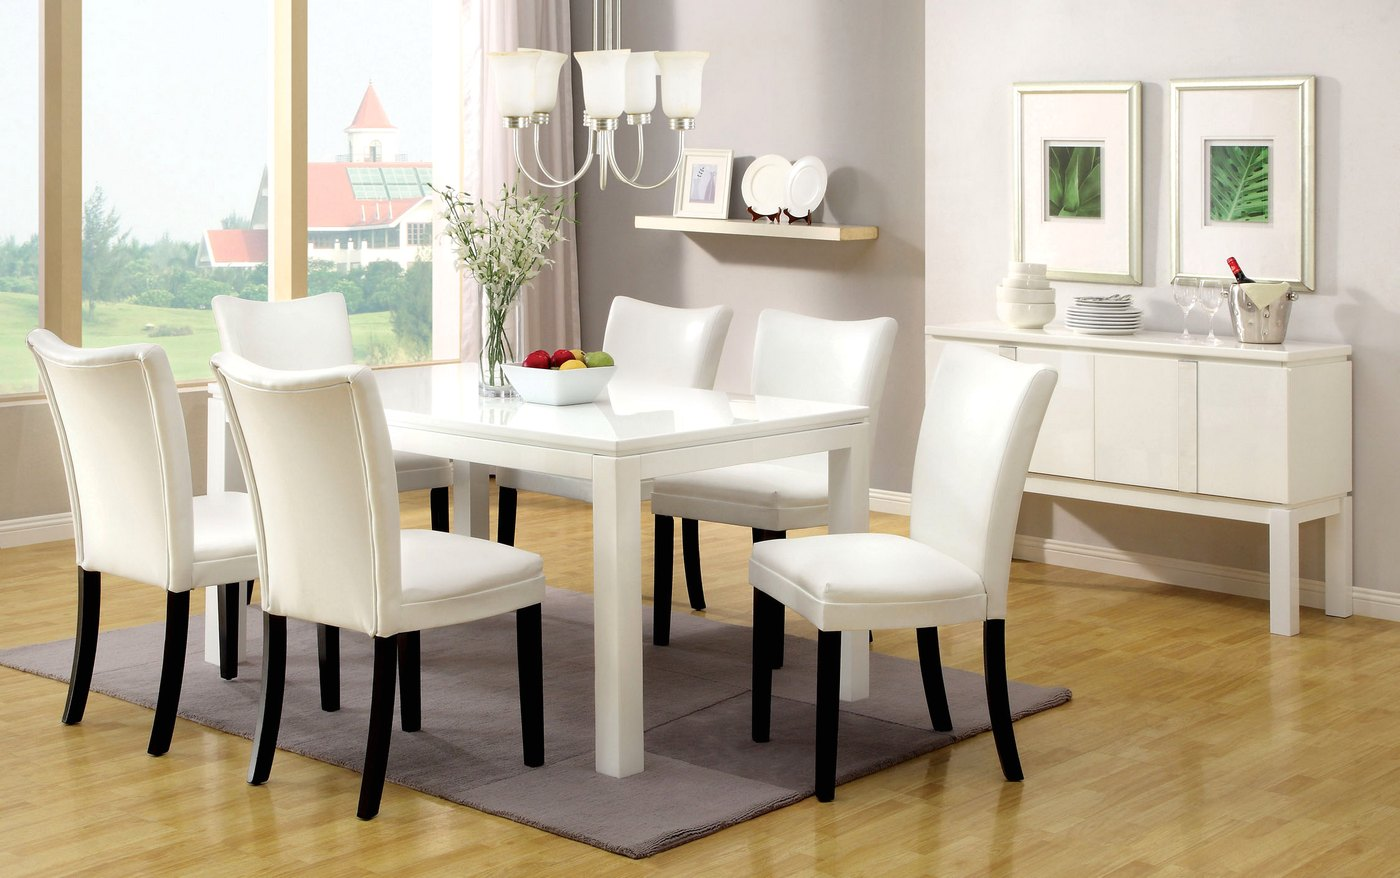 Lamia I Contemporary White Casual Dining Set With